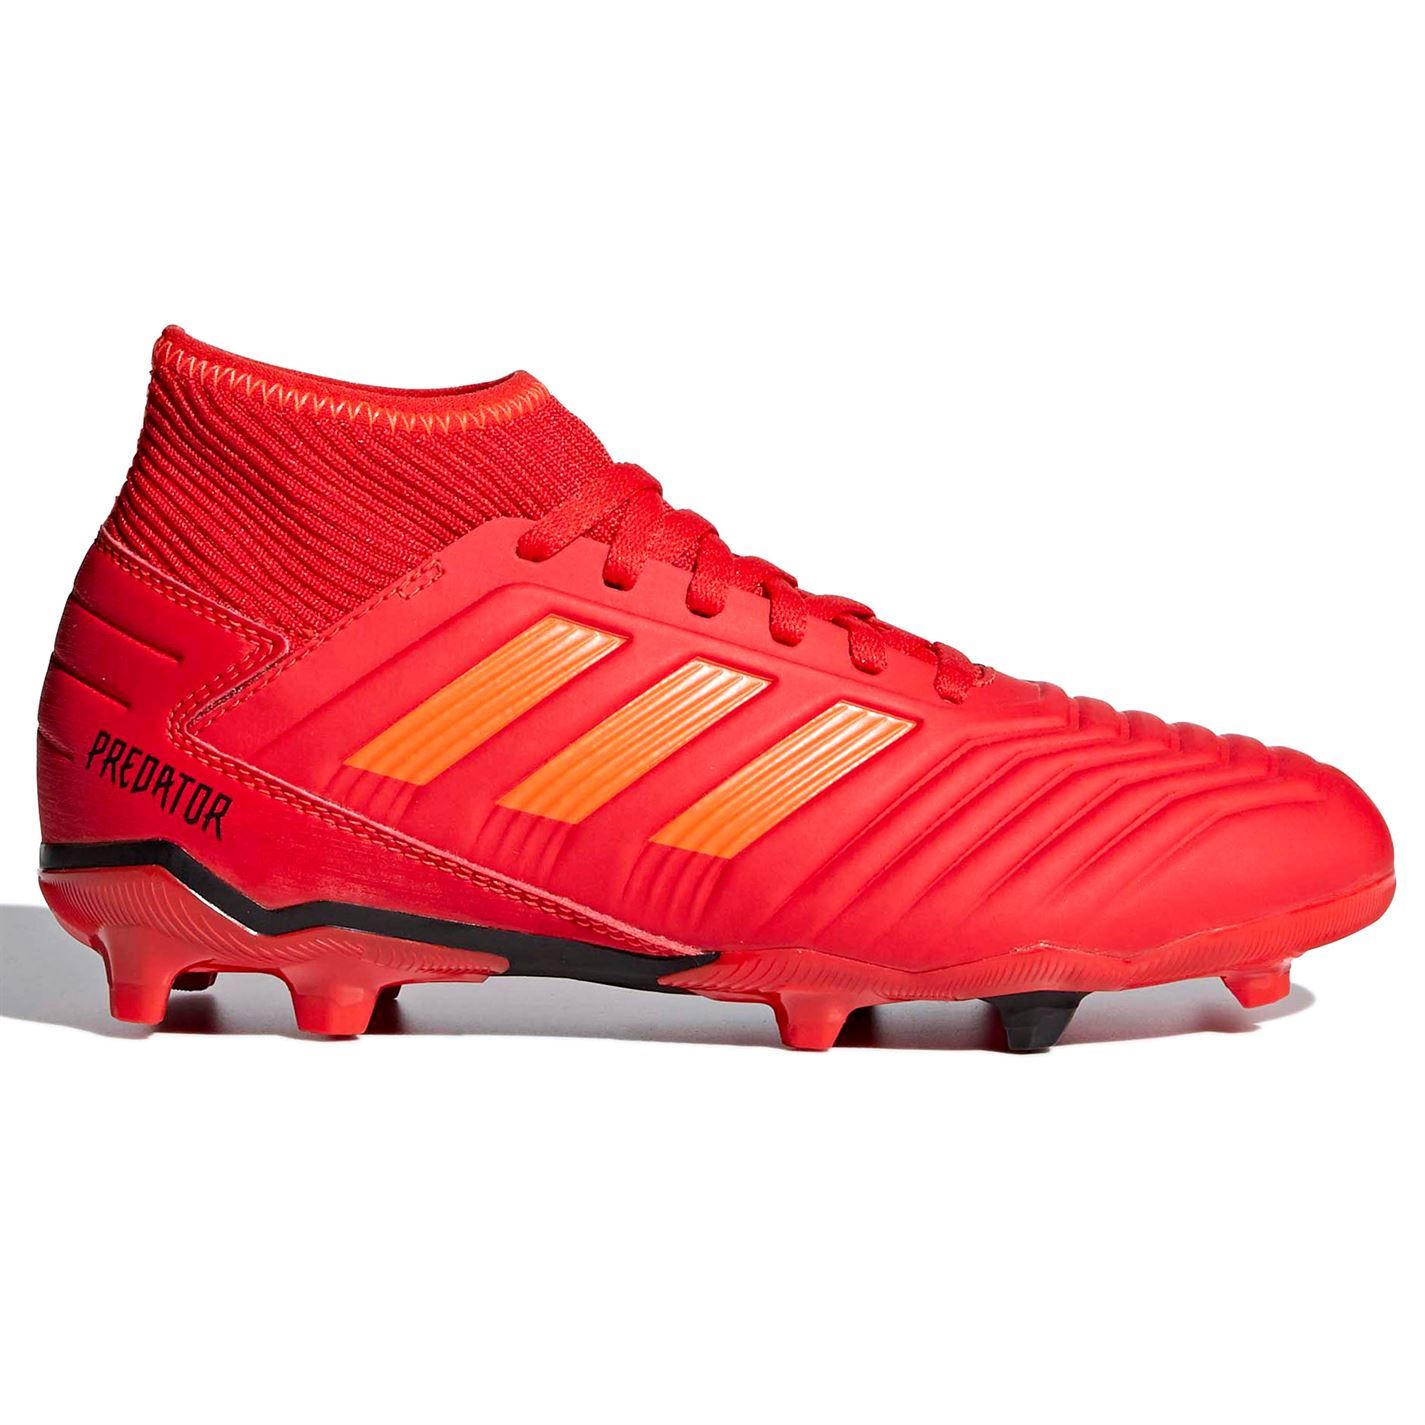 5c084a16ea3 ... adidas Predator 19.3 FG Firm Ground Football Boots Childs Red Soccer  Cleats ...